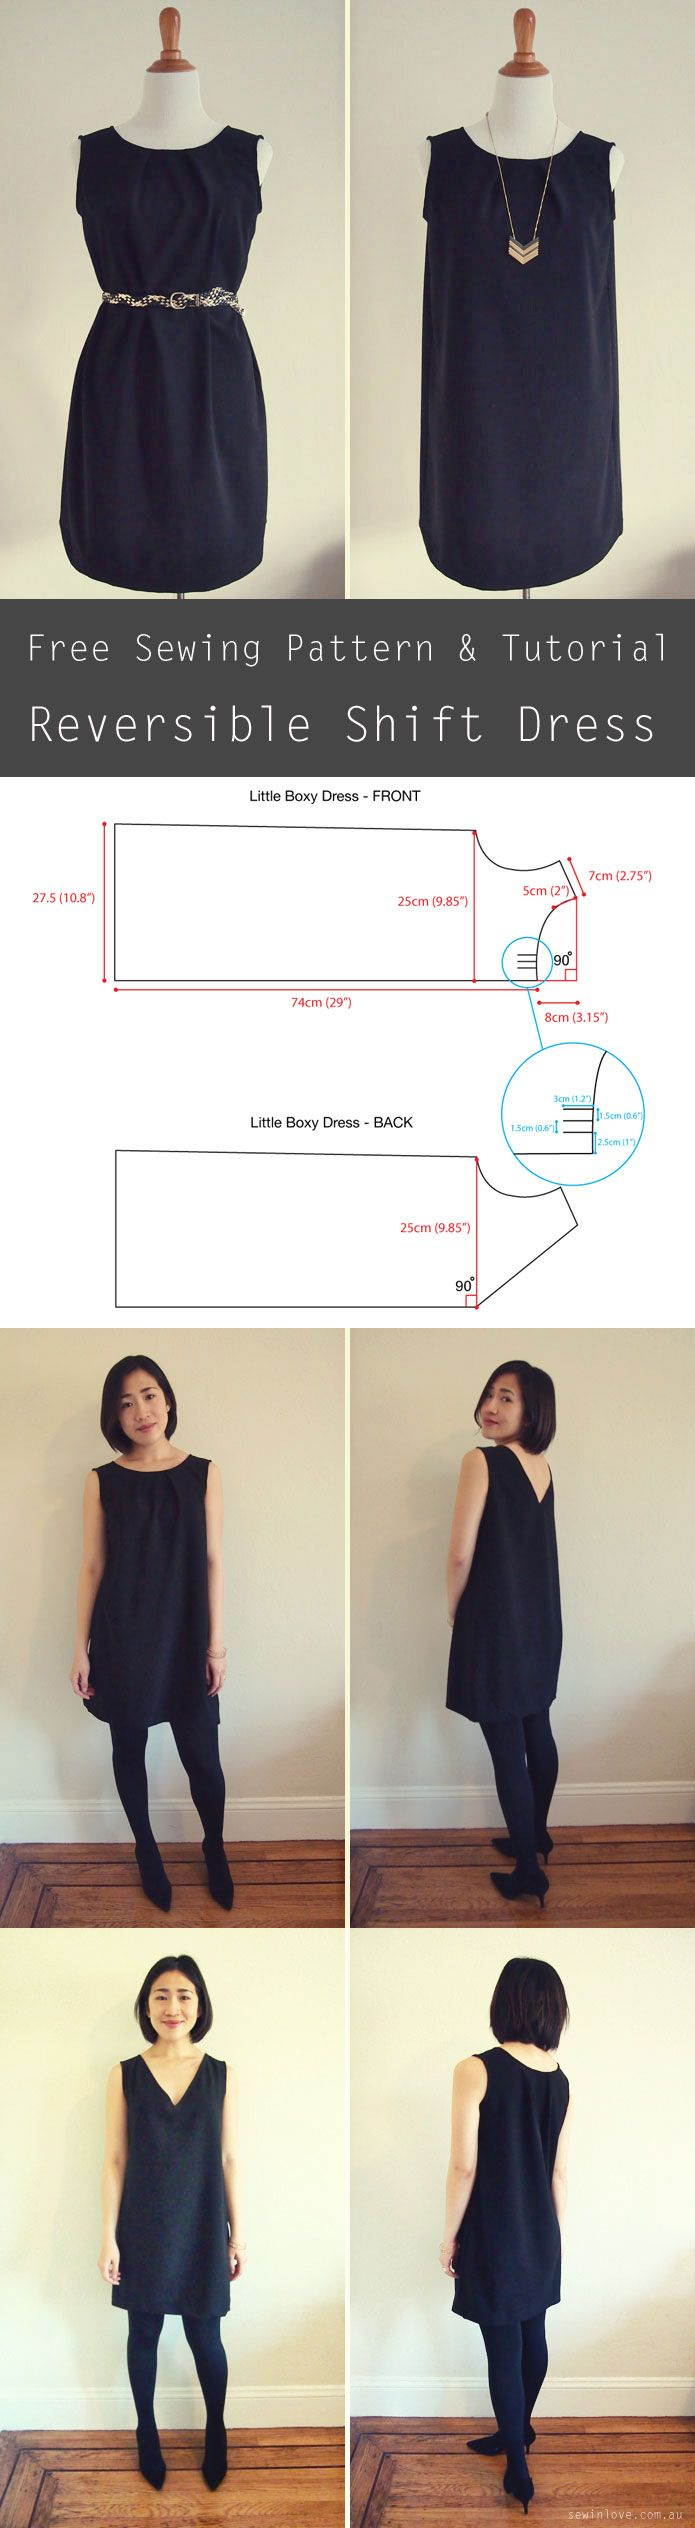 Free-sewing-pattern-LBD-Pinterest.jpg 695×2.528 Pixel